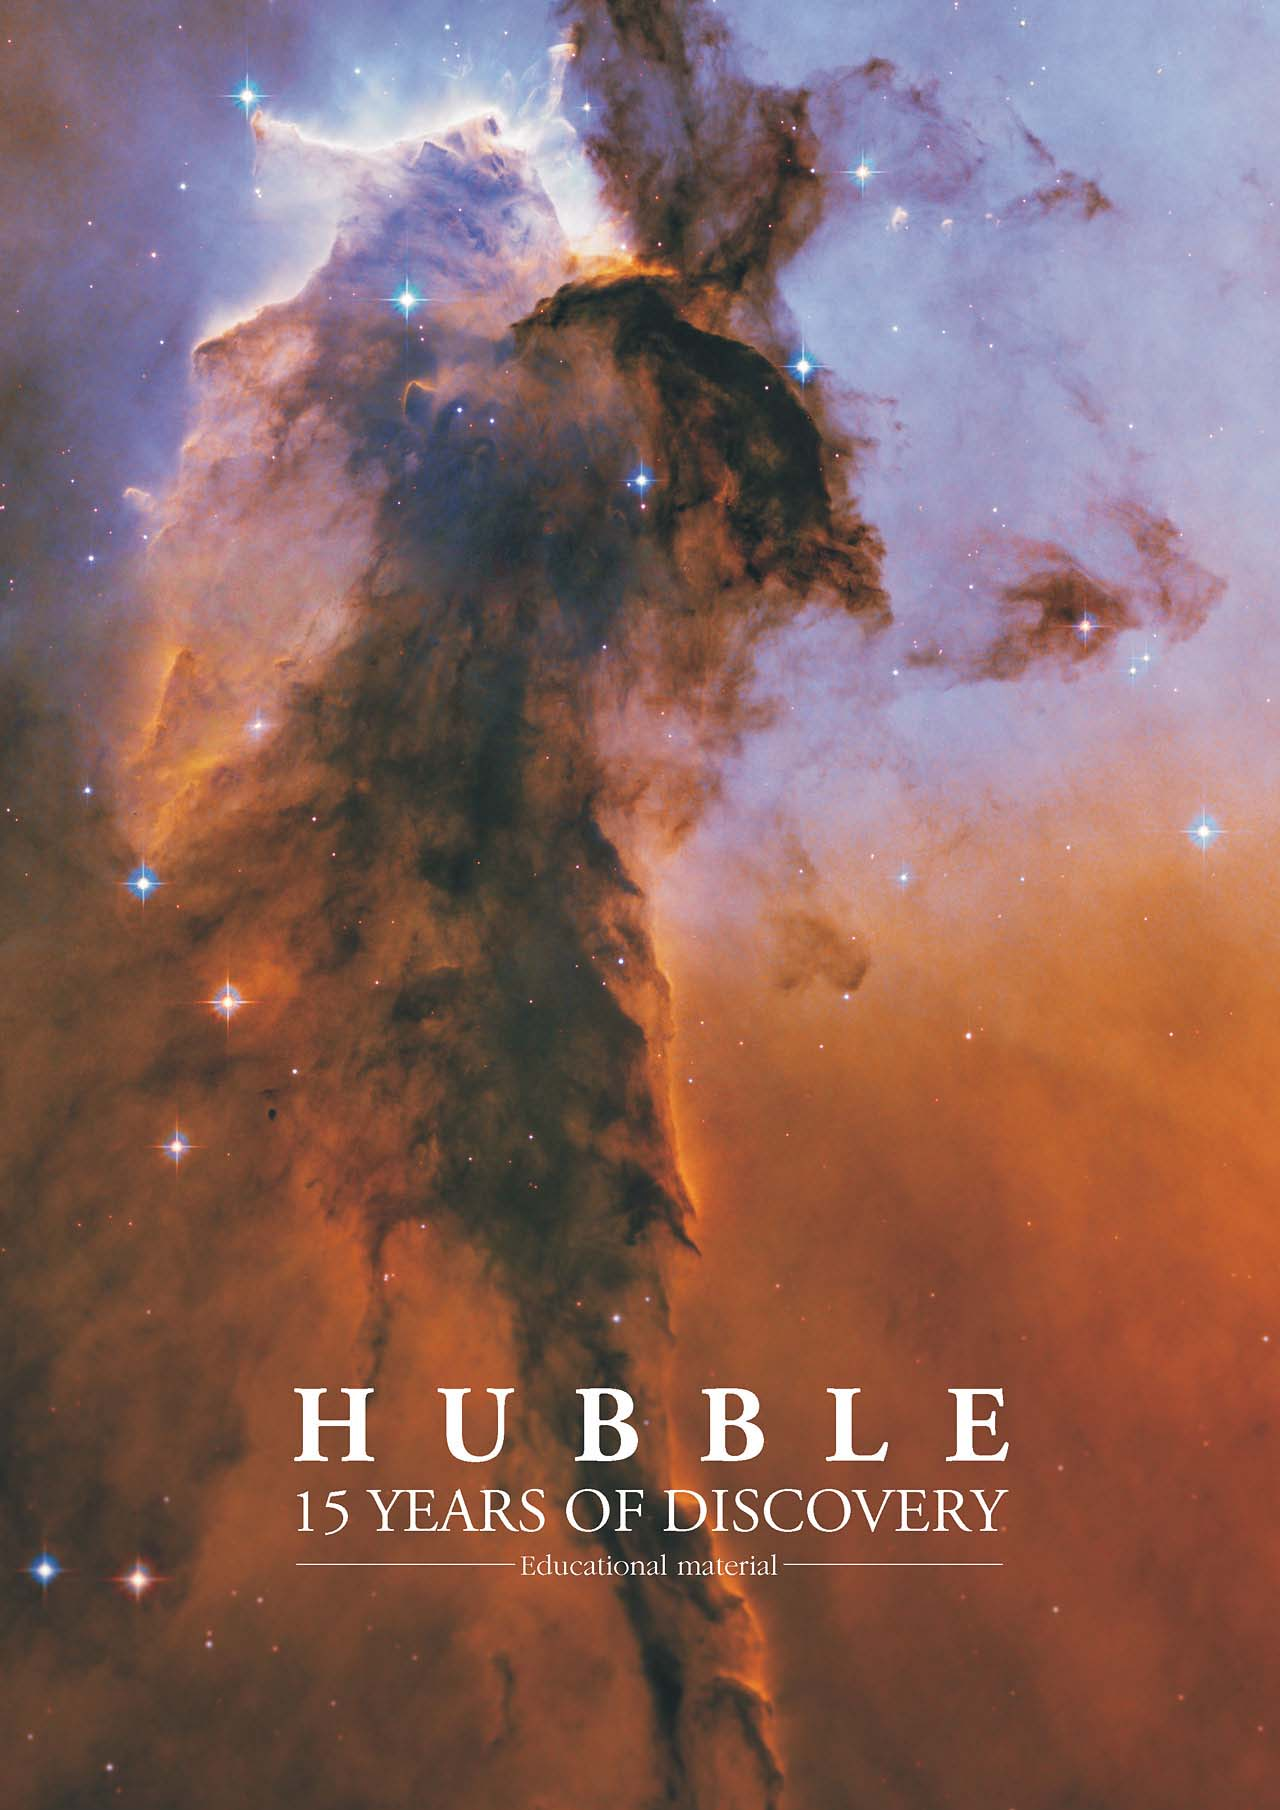 15 Years of Hubble Discovery Documentary